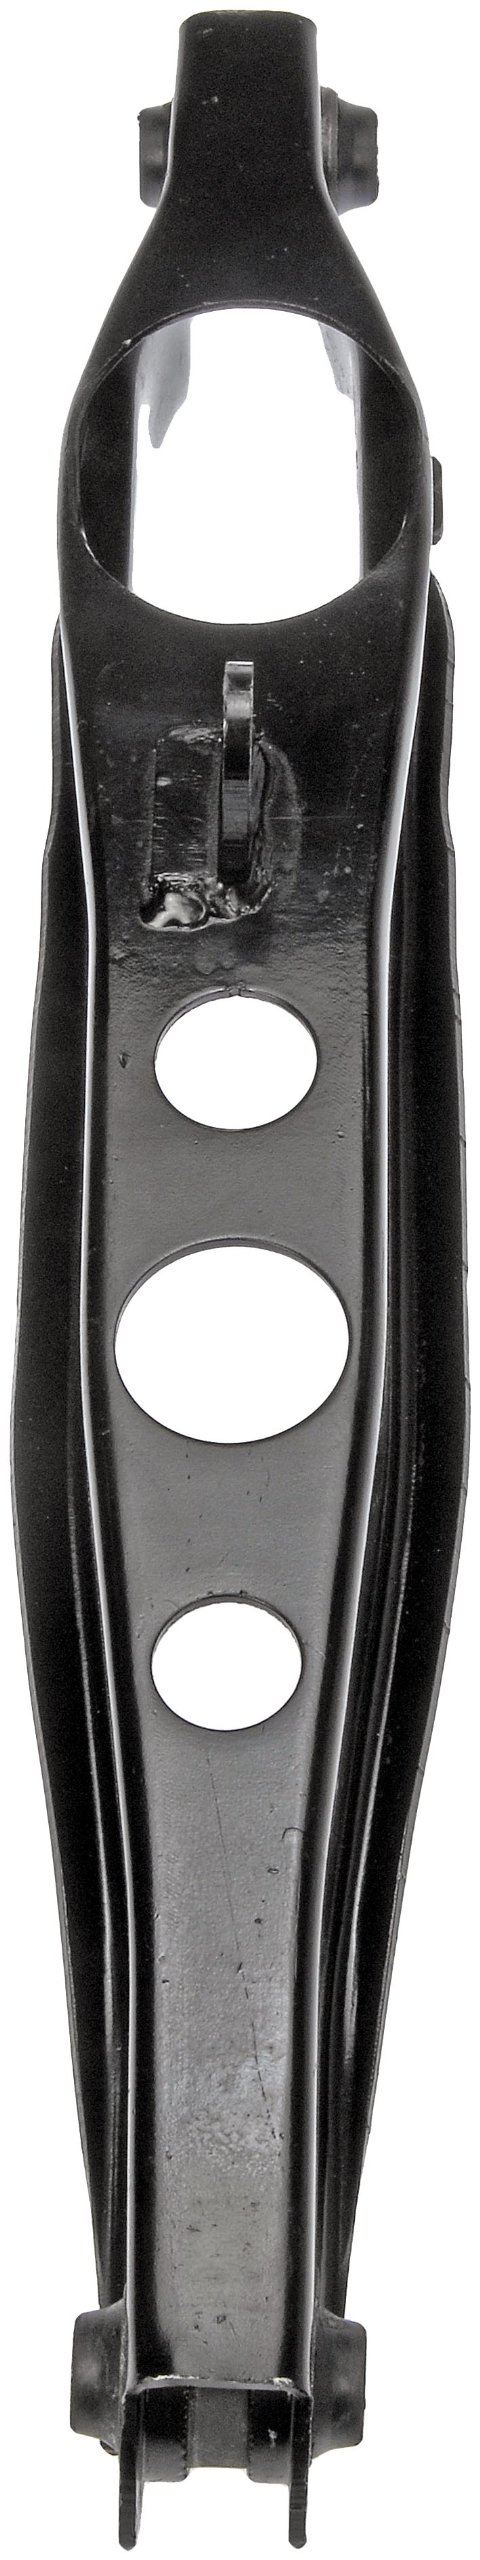 Dorman 521-869 Control Arm and Ball Joint Assembly